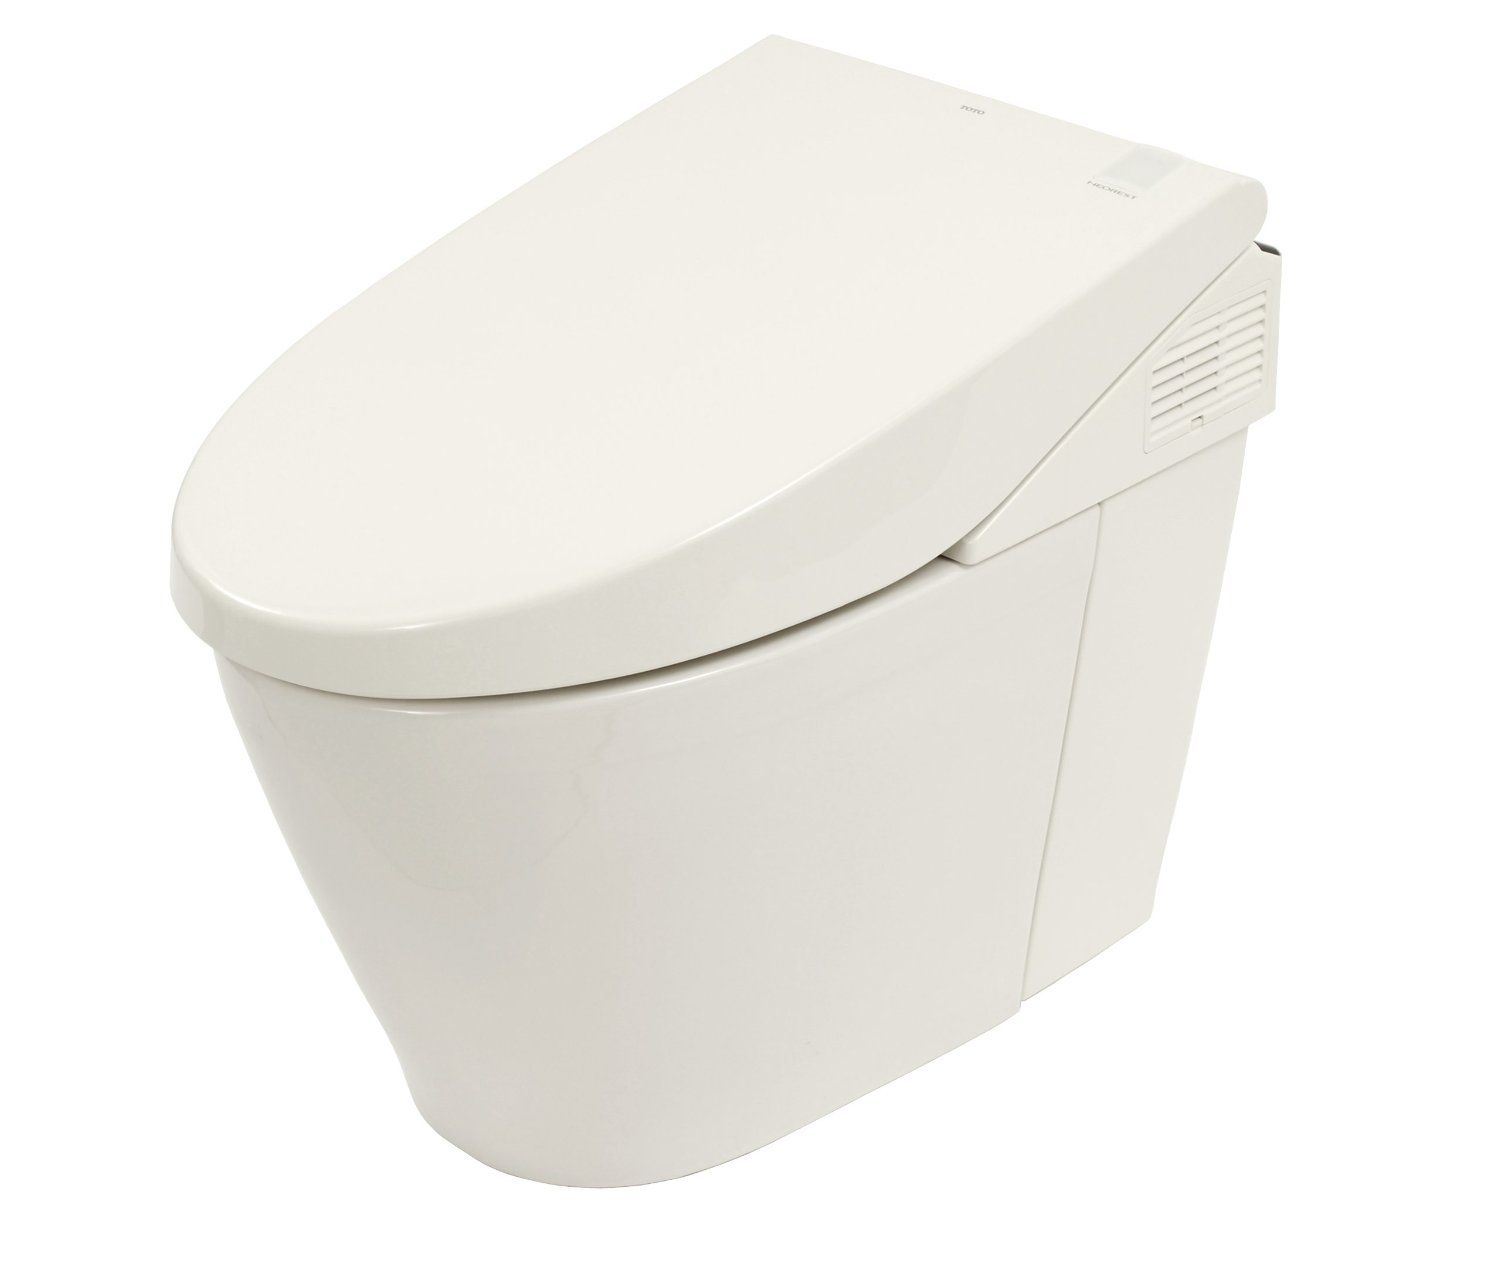 Best Toilet Brands and Reviews | Utility and powder room ideas ...